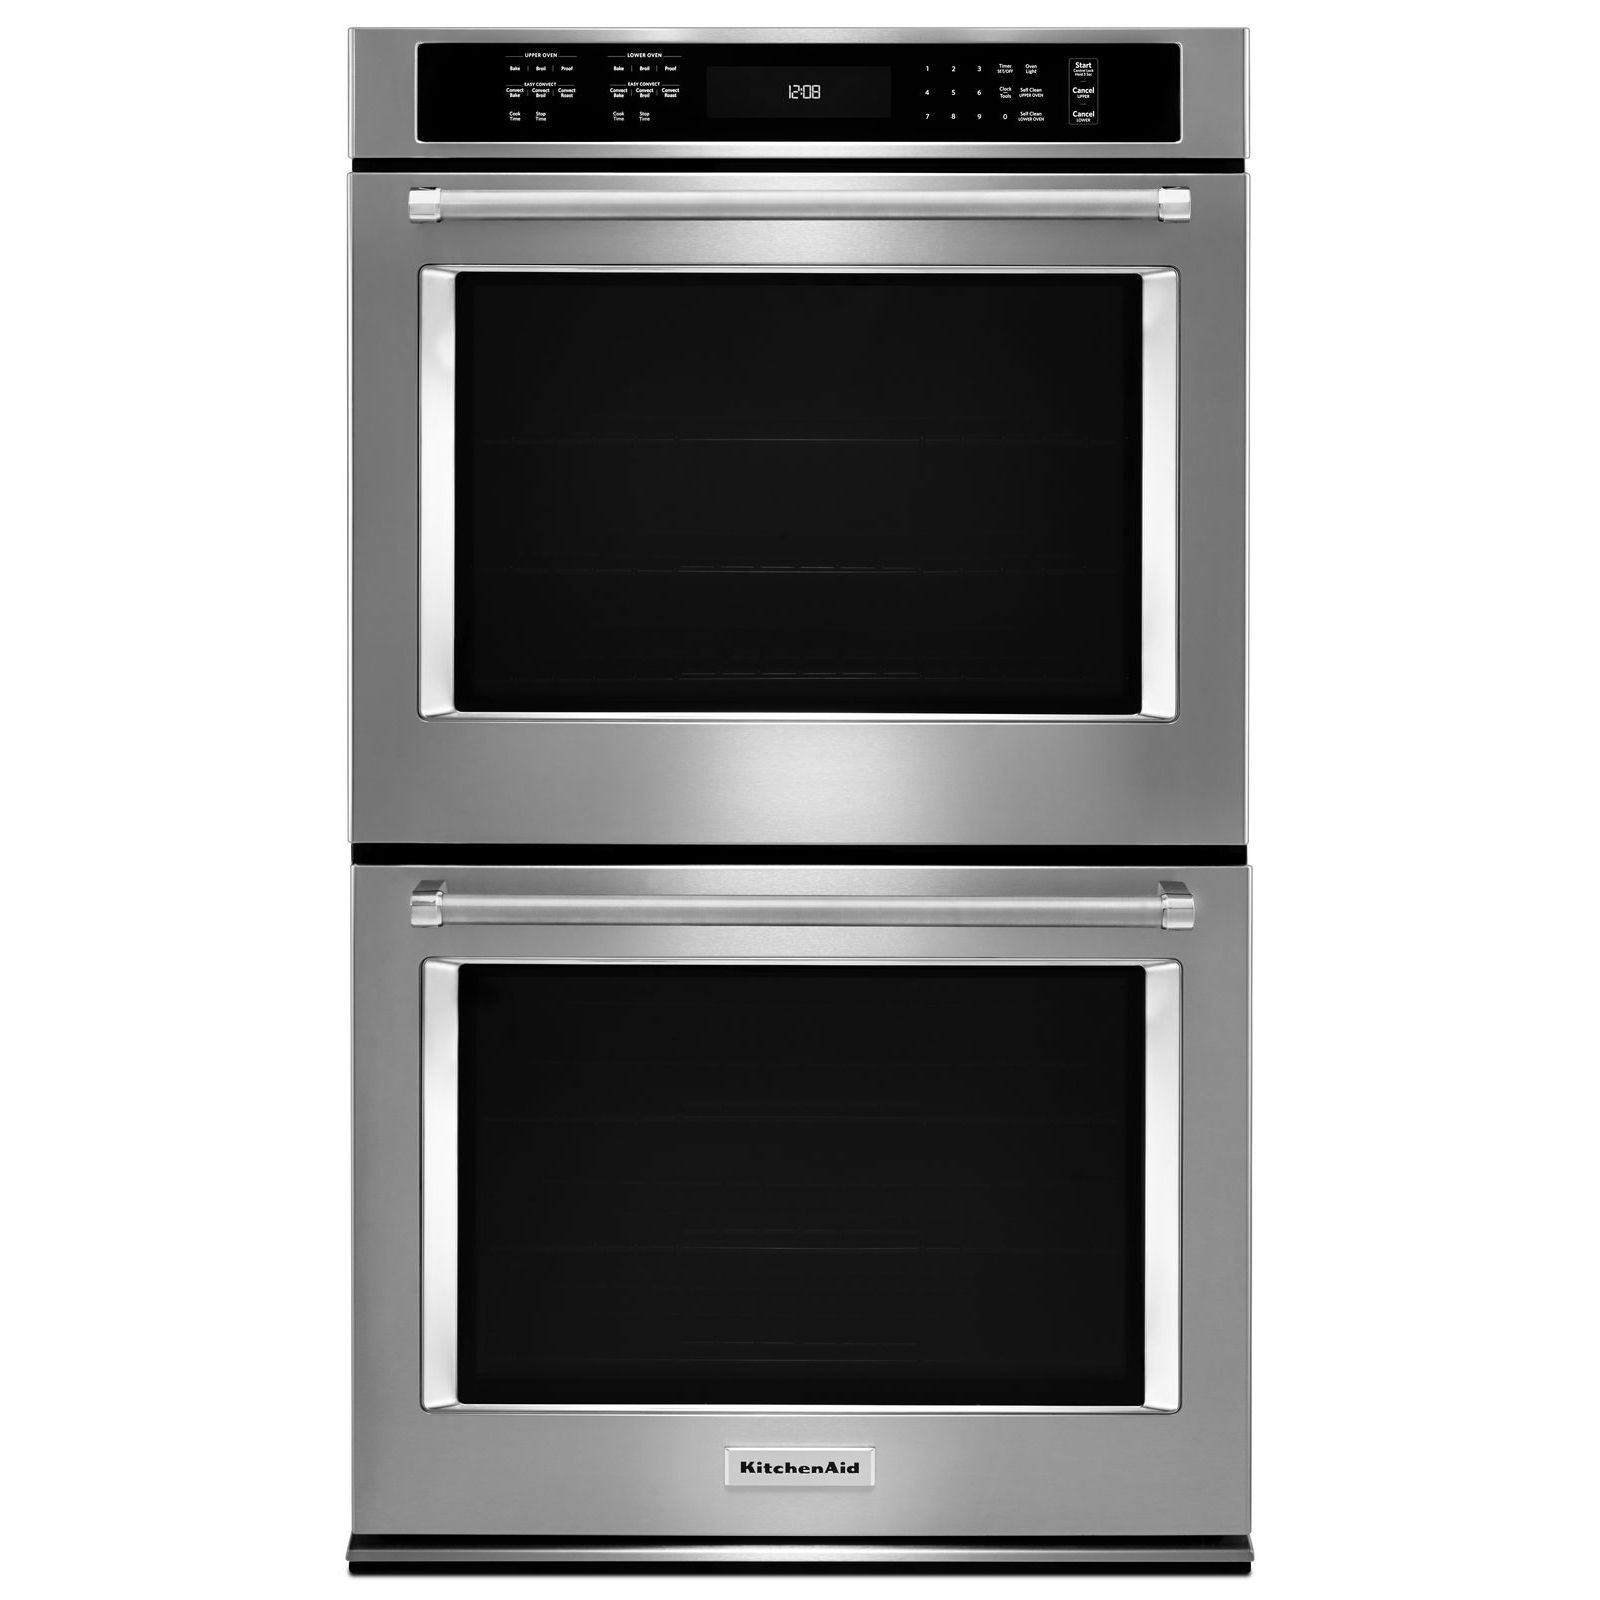 Kode500ess 2447 kitchenaid 30 double wall oven with